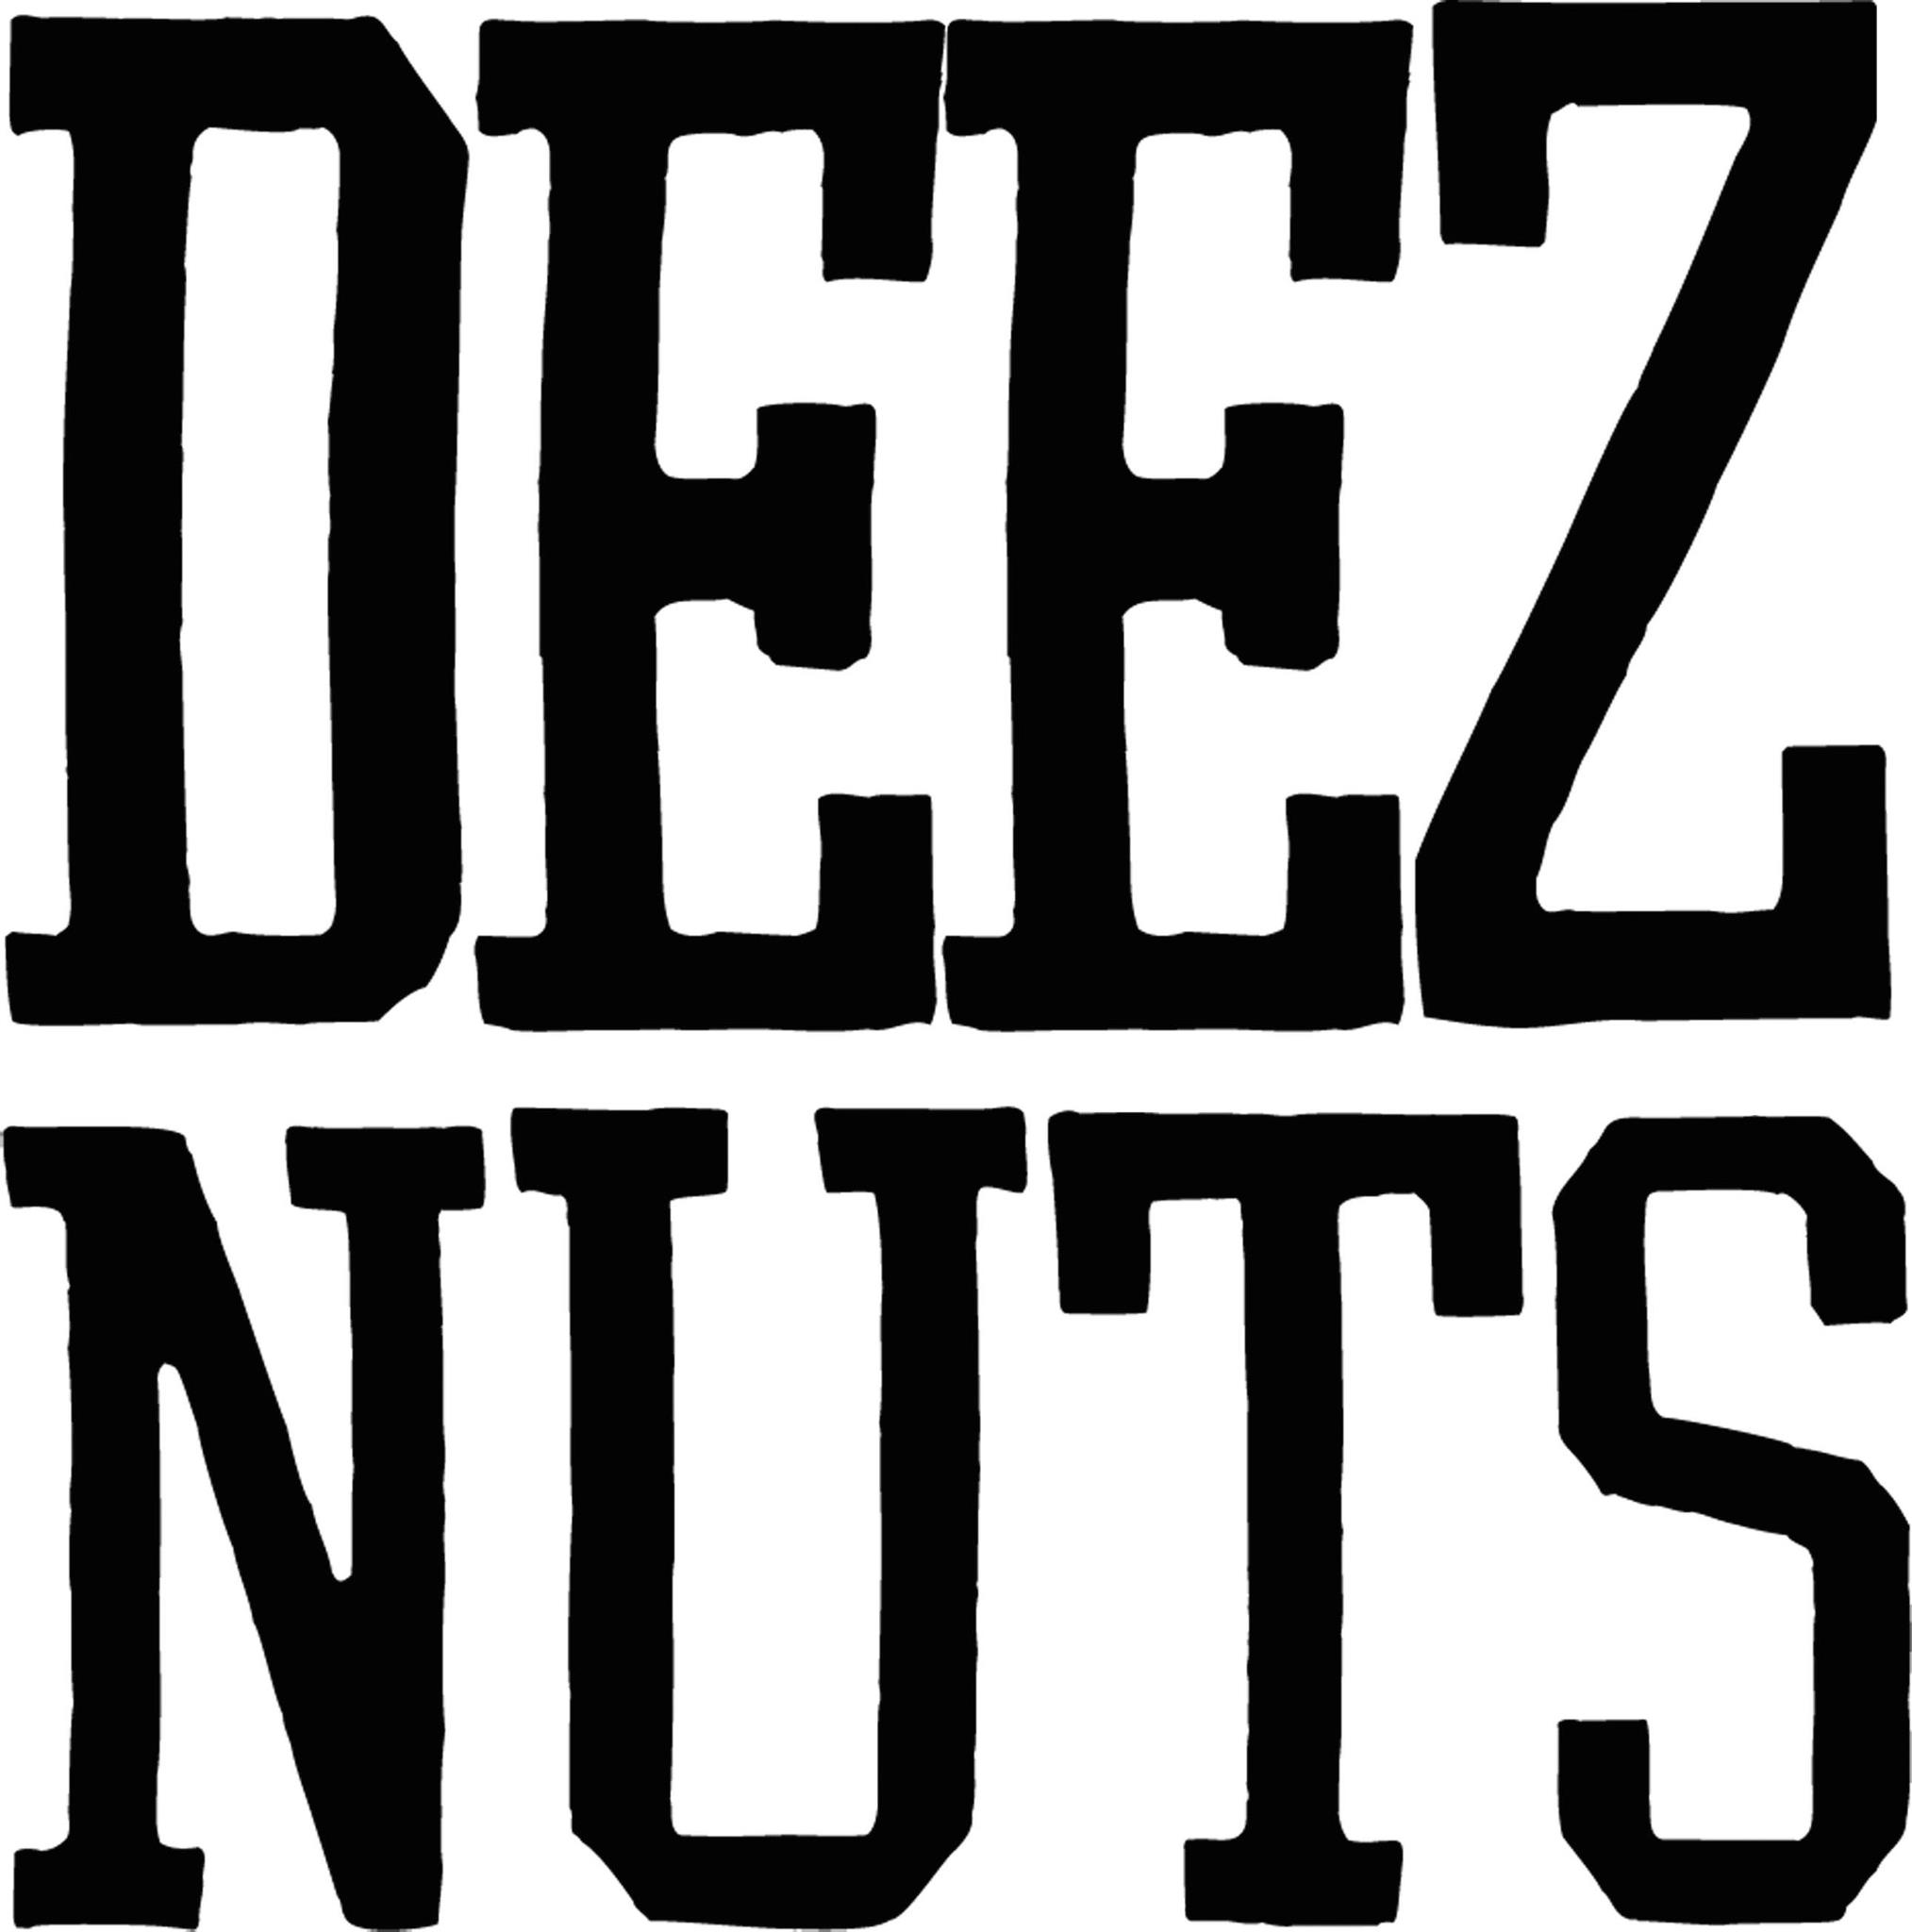 deez nutz Ouça músicas de deez nuts como 'don't wanna talk about it', 'face this on my own', 'yesterday', 'band of brothers (feat sam carter)' e todas as outras músicas.